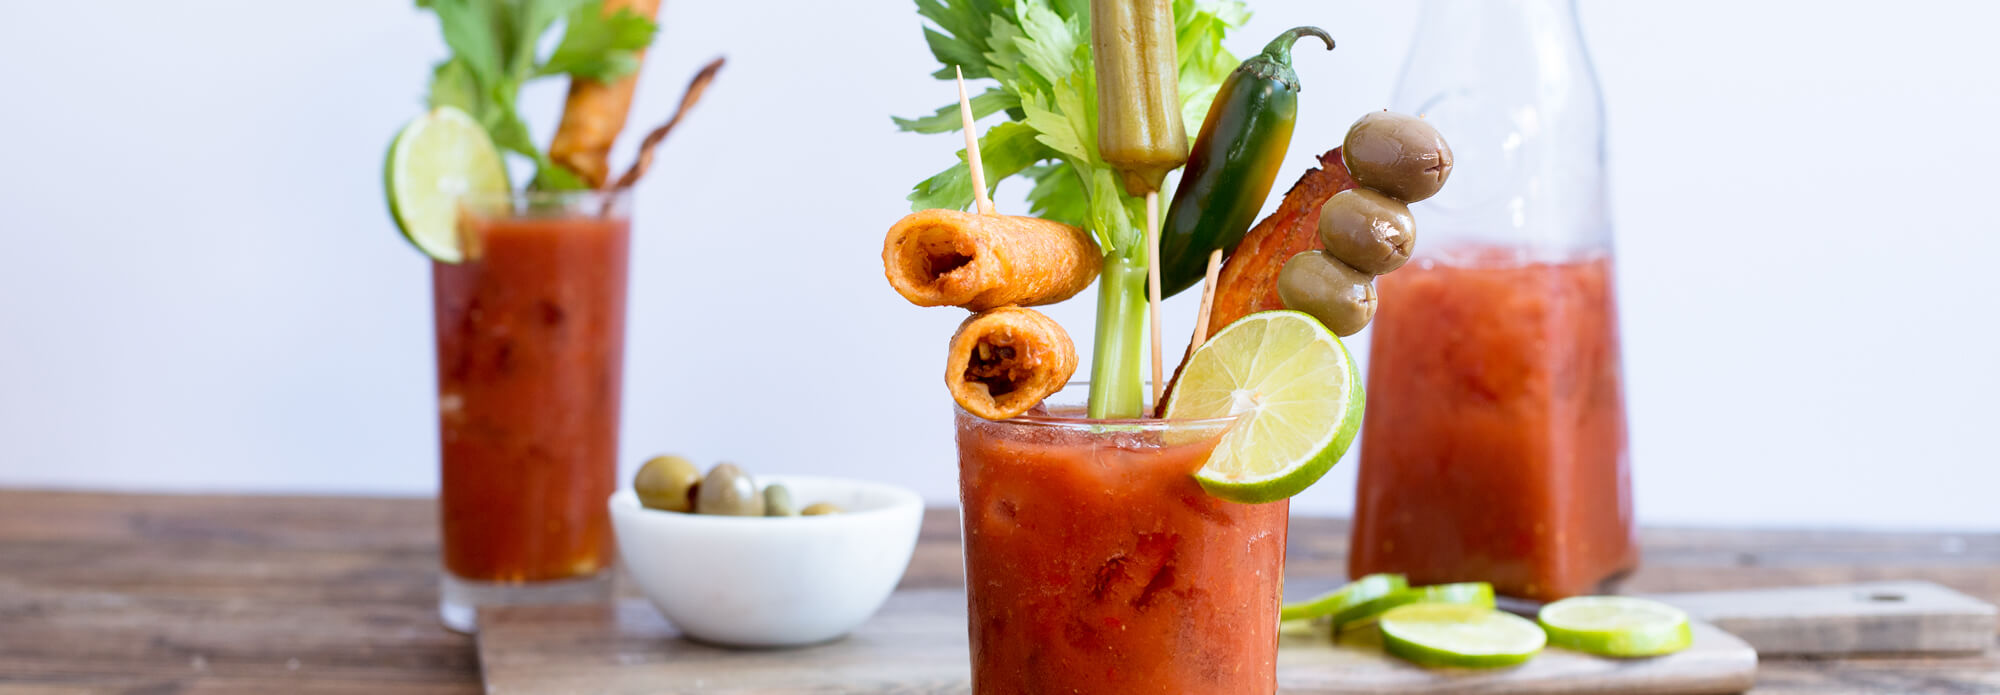 Salsas bloody mary